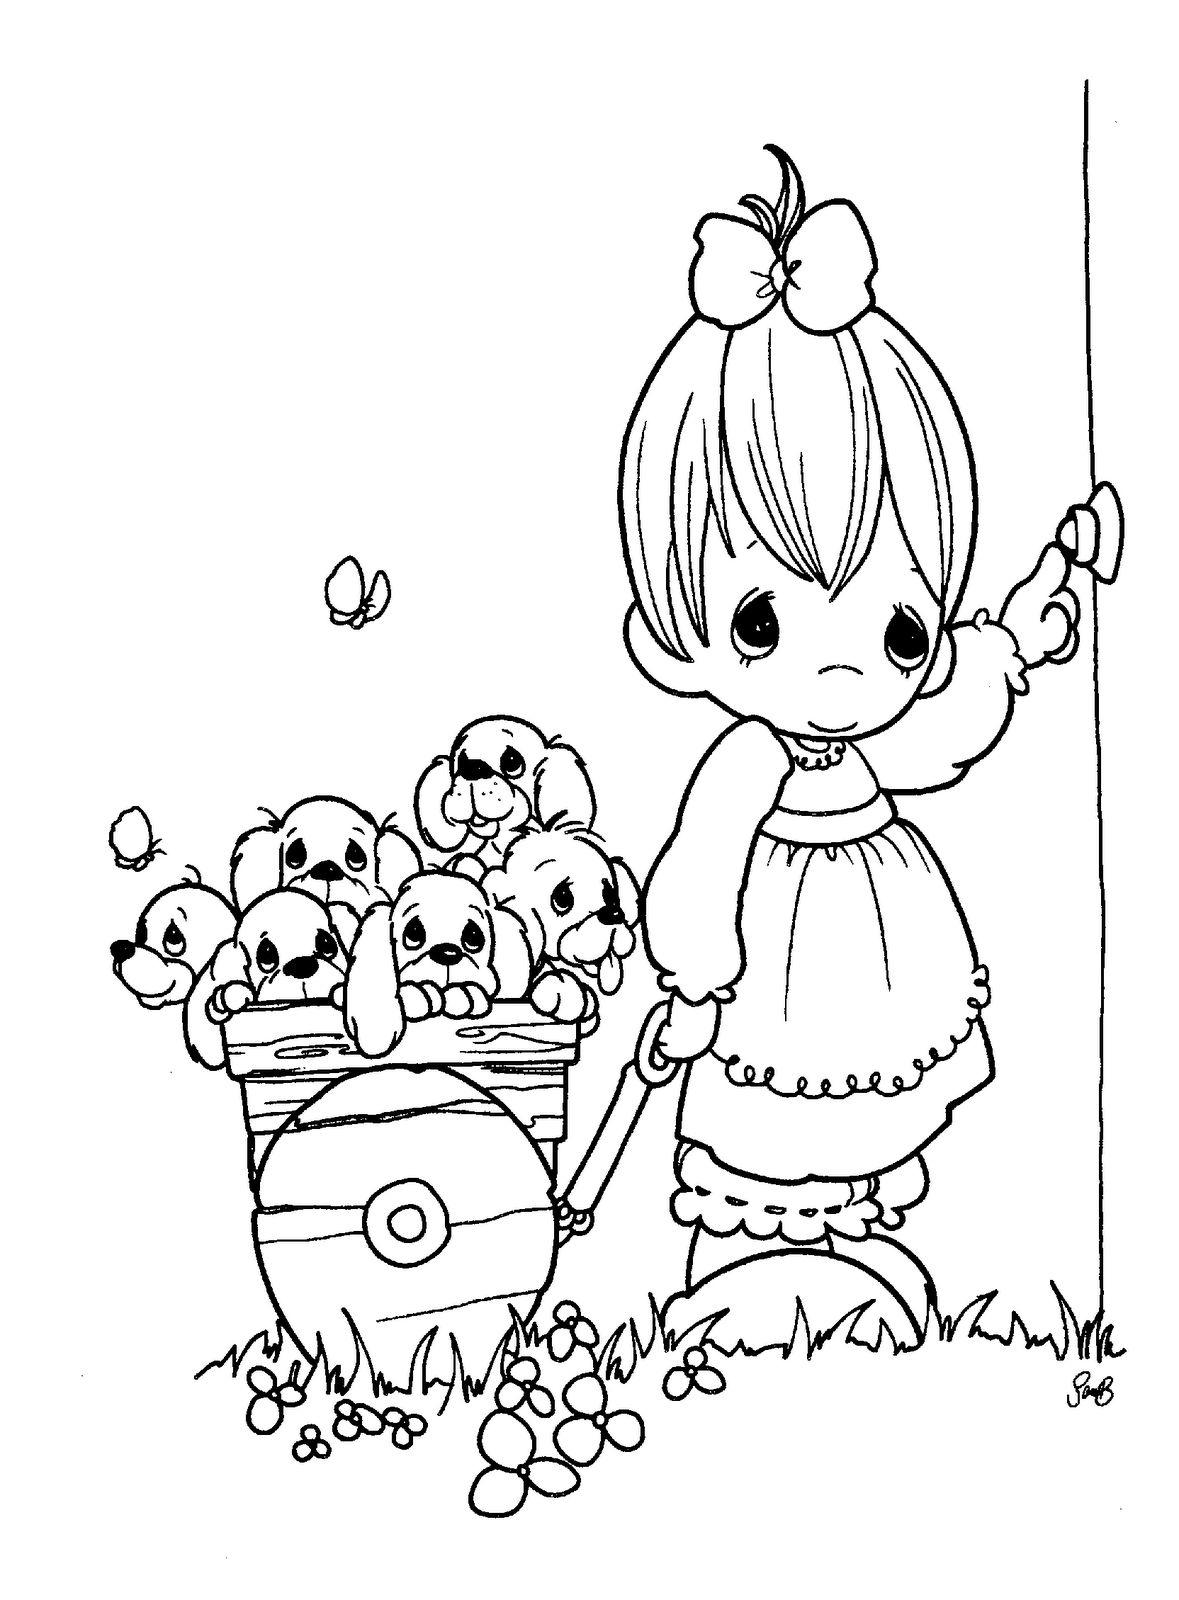 precious moments coloring books precious moments for love coloring pages gtgt disney books coloring precious moments